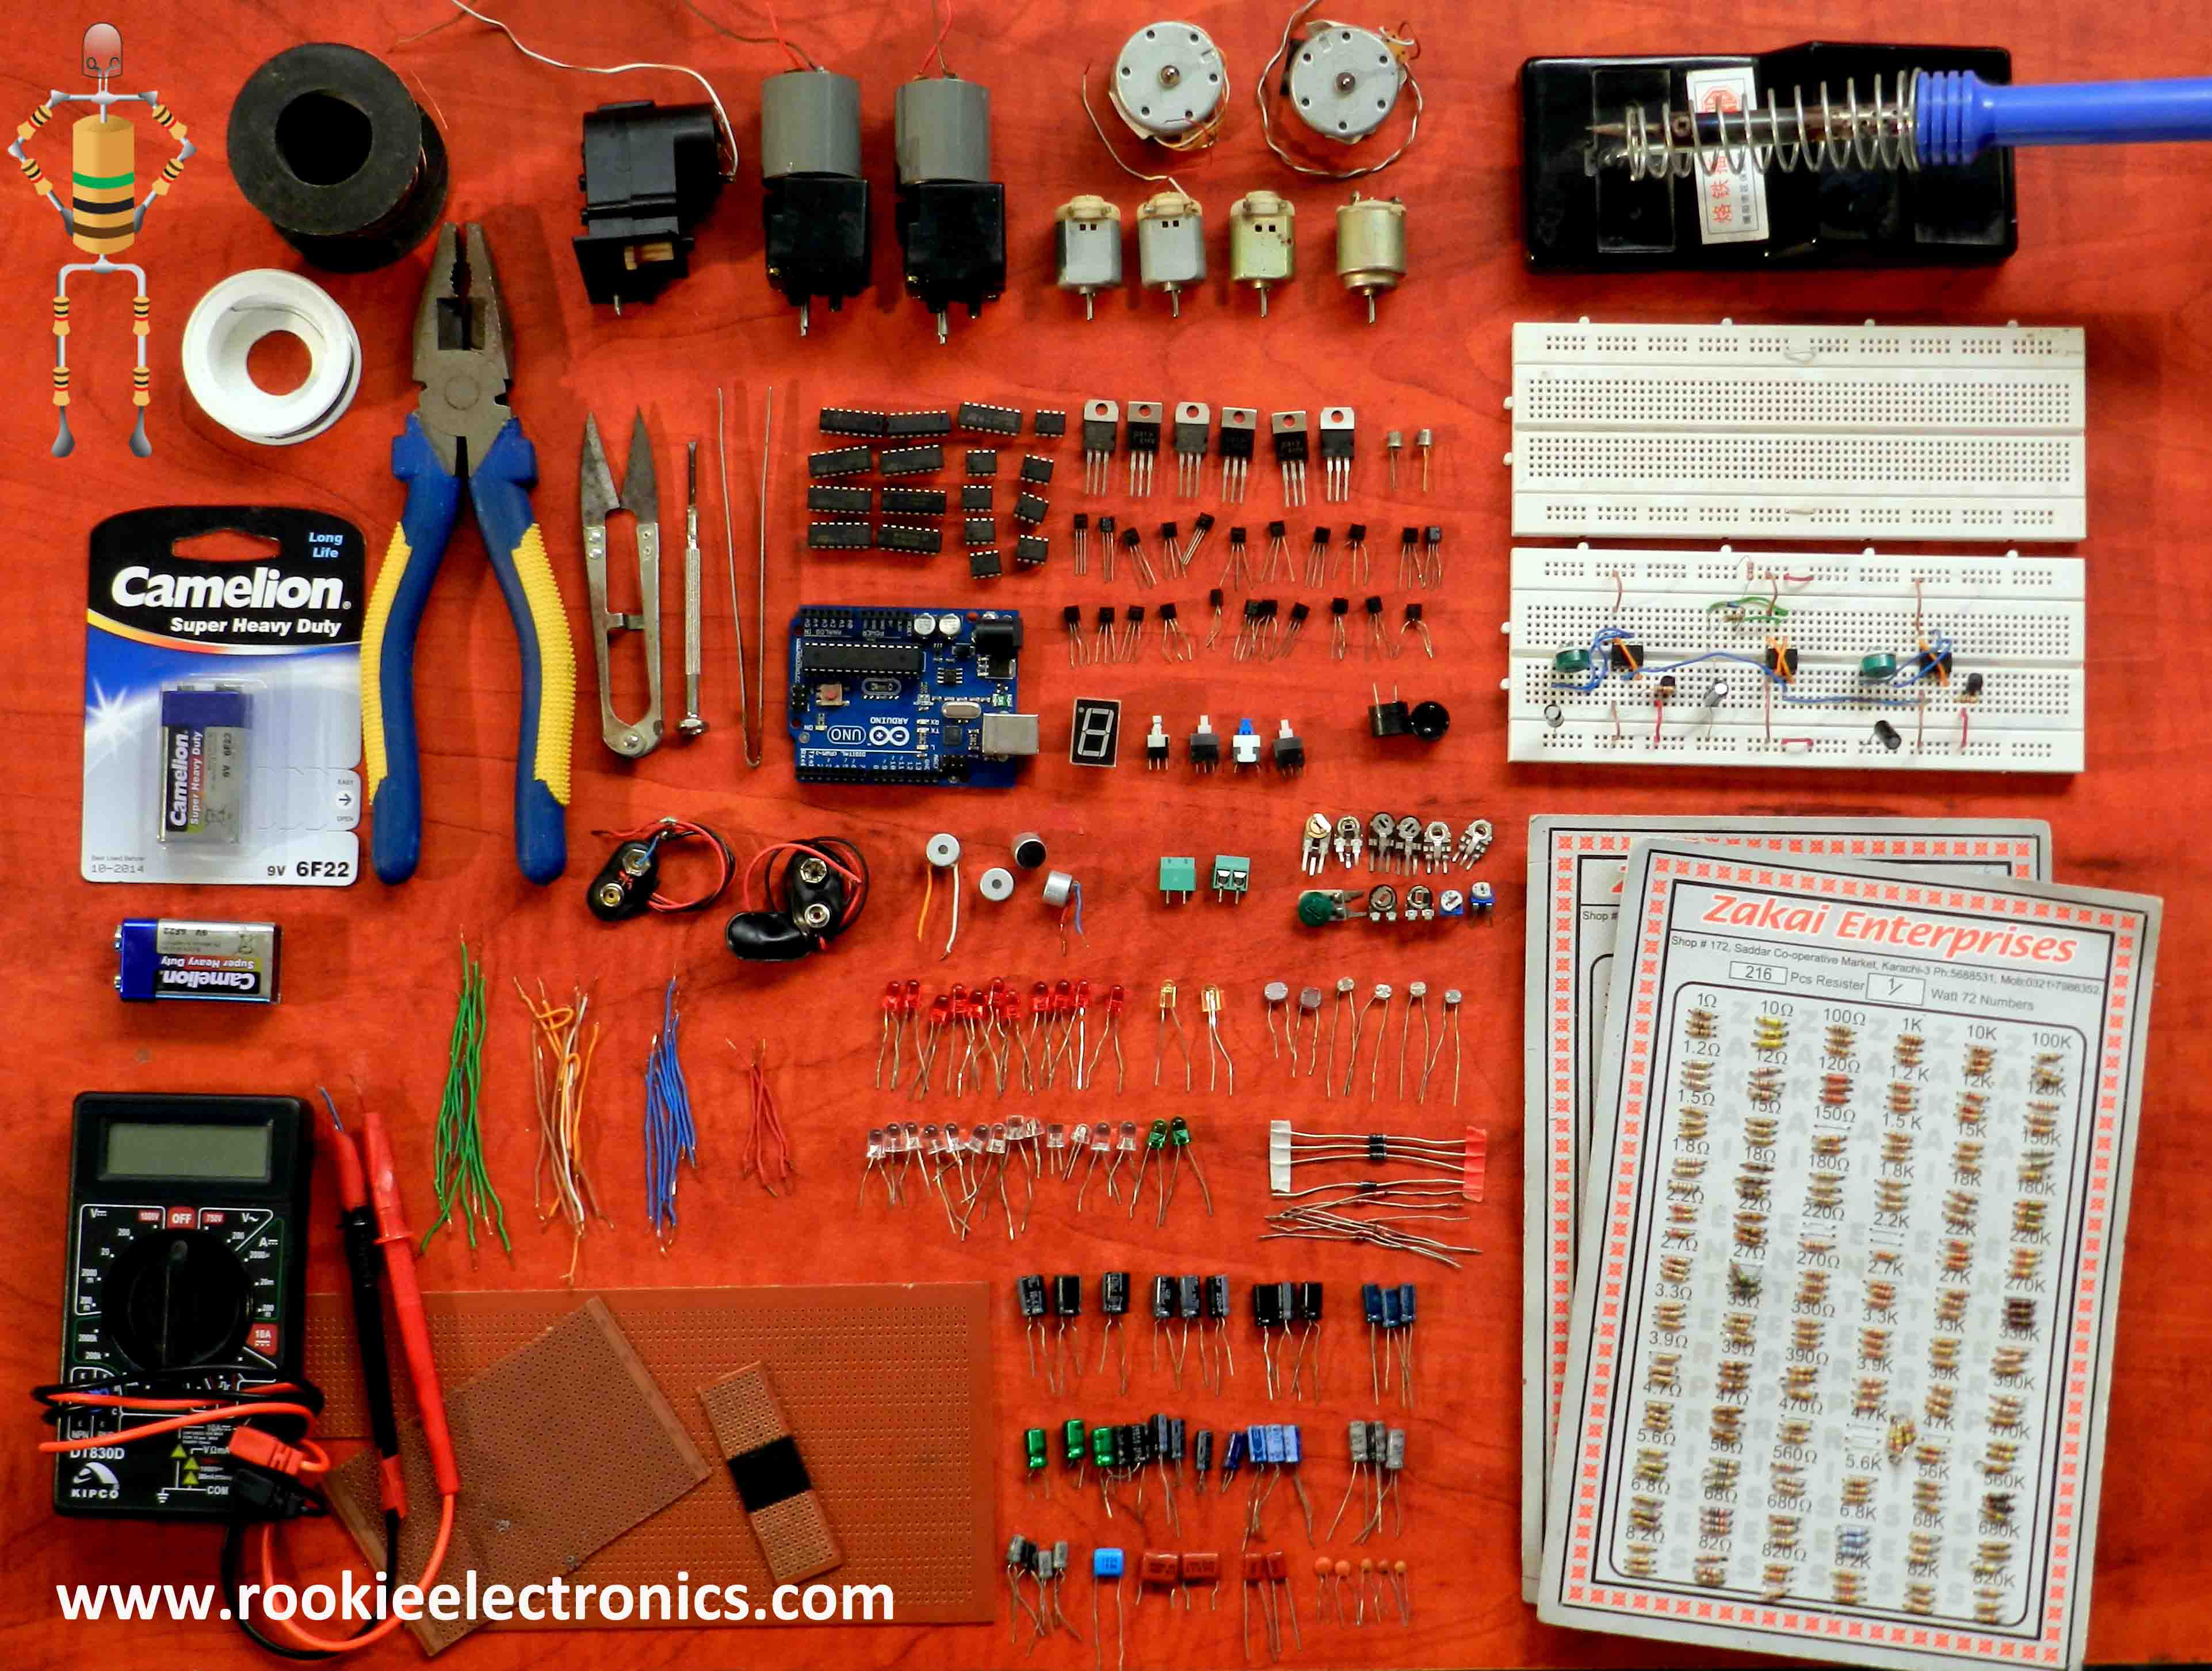 electronic project kit 10 awesome electronics kits for kids: get your child started exploring and learning about electronics with these electronics kits for beginners to advanced.